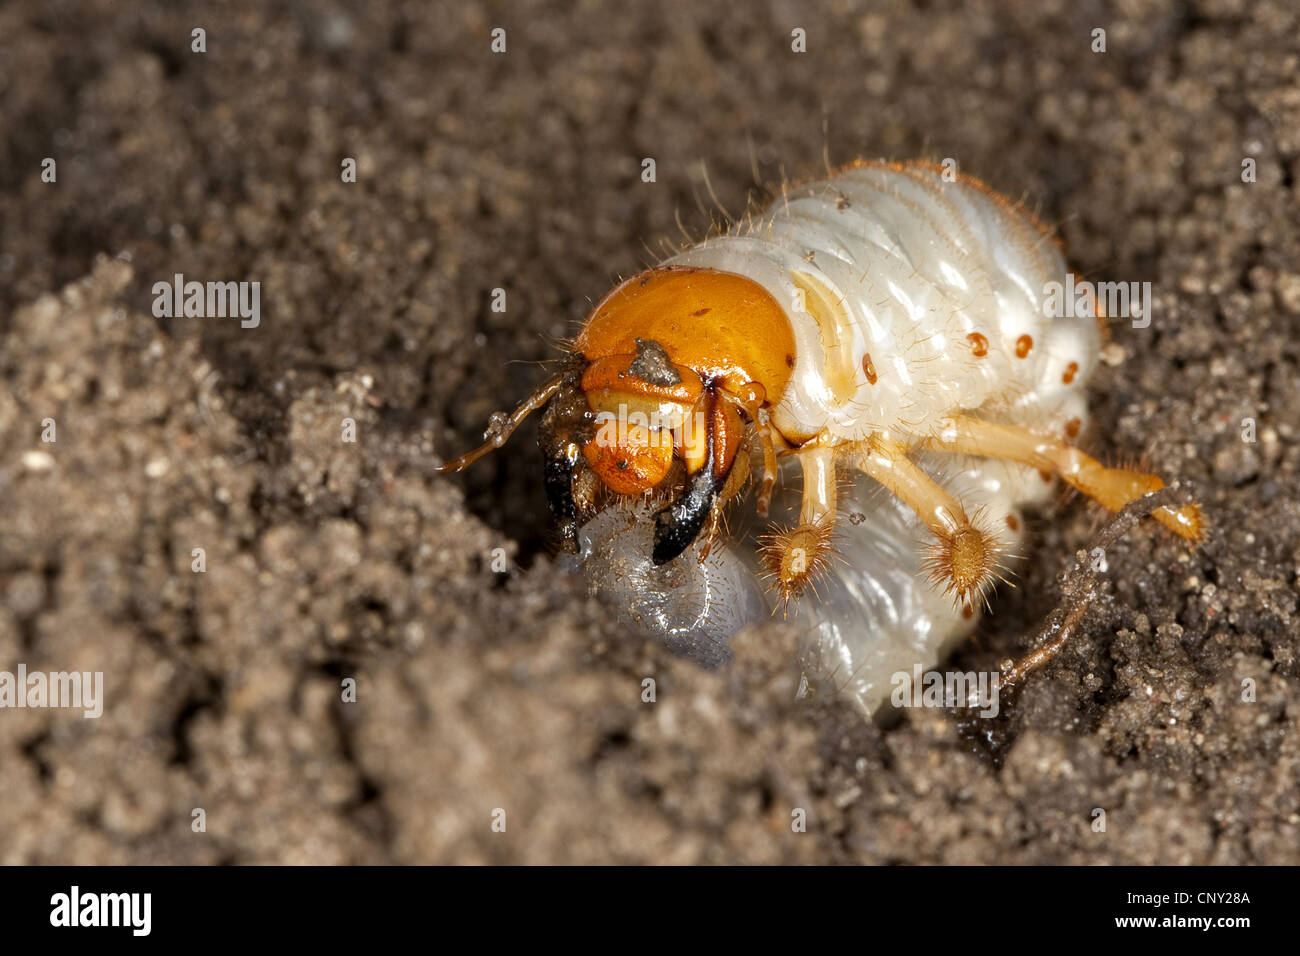 common cockchafer, maybug (Melolontha melolontha), larva in soil ground, Germany Stock Photo